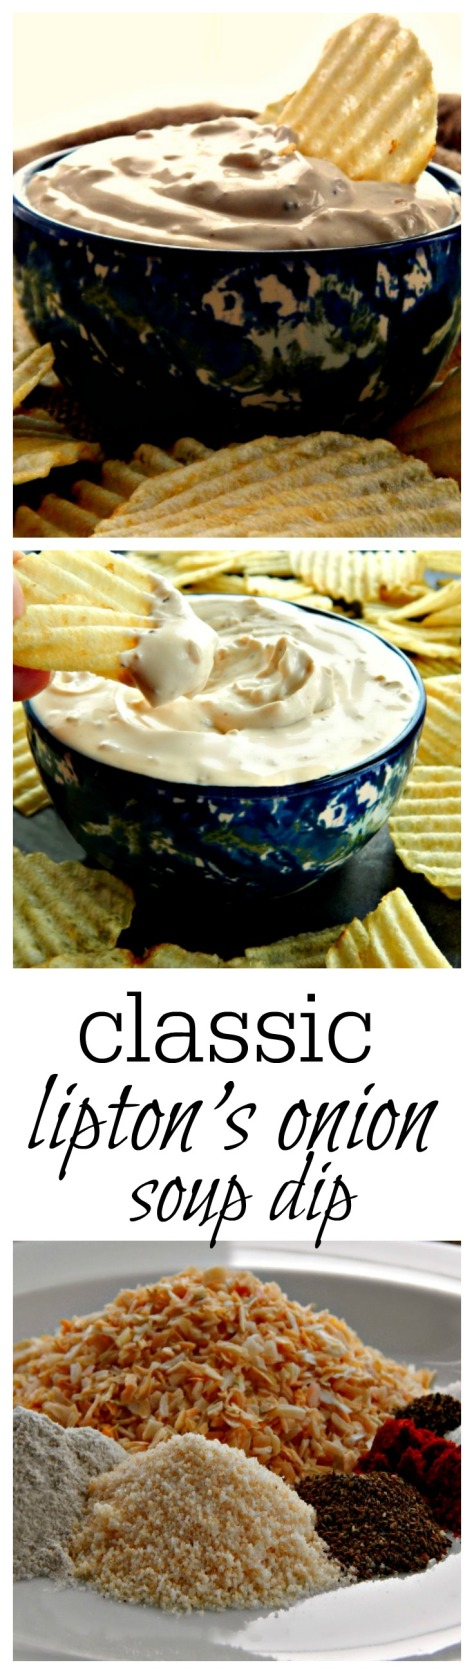 This is the easy classic onion dip, made with Liption's dry onion soup mix (or my home-made version)